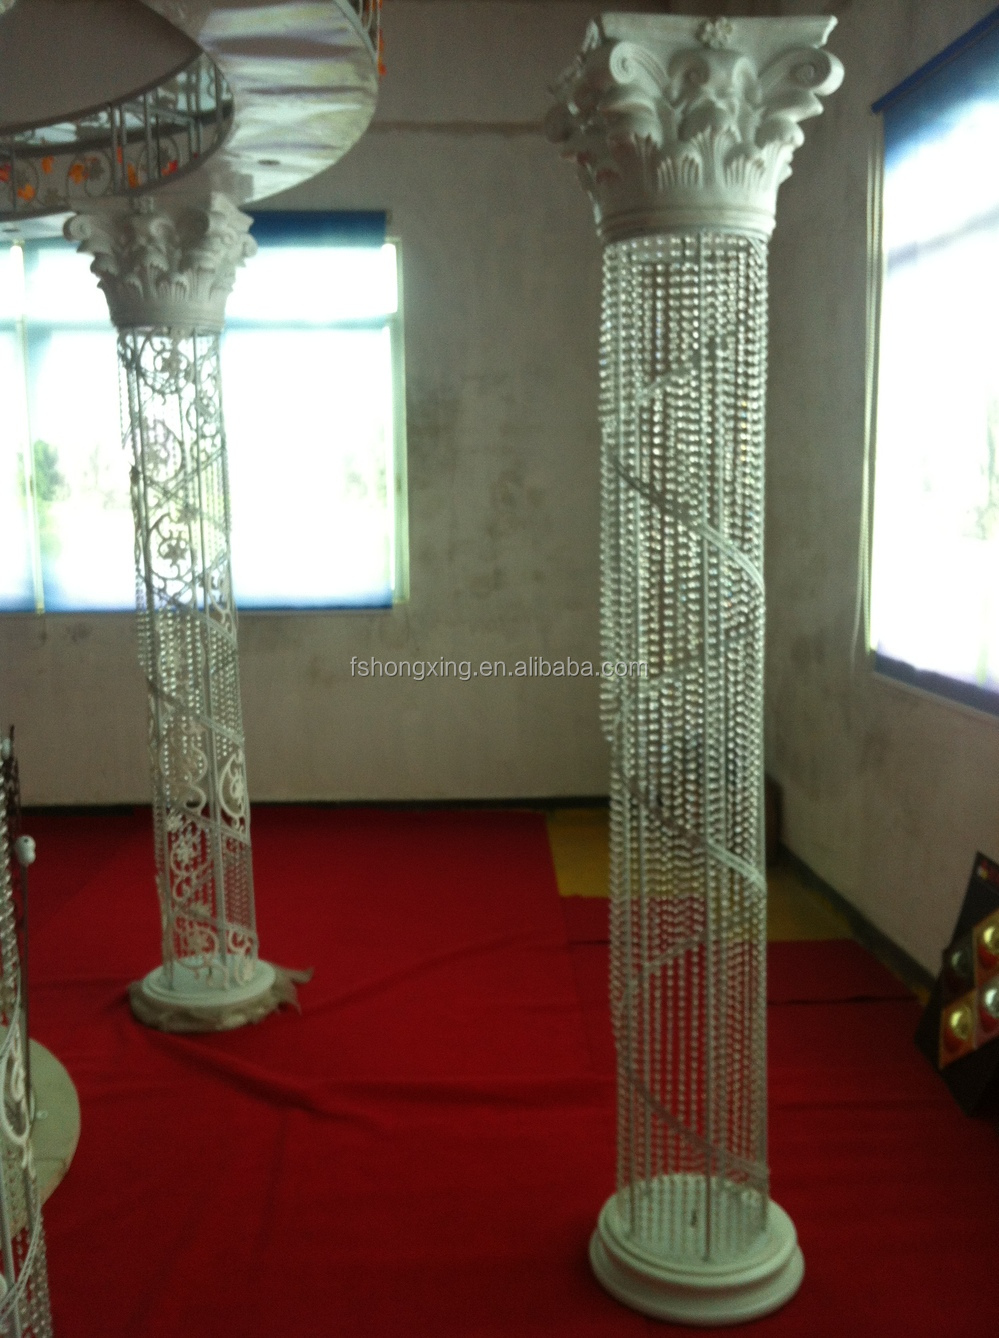 How To Make Diy Lighted Wedding Columns.Illuminated Modern Wedding Crystal Decoration Pillar Clear Acrylic Wedding Roman Columns Wedding Stage Pillars Wedding Mandap Buy Decorated Crystal